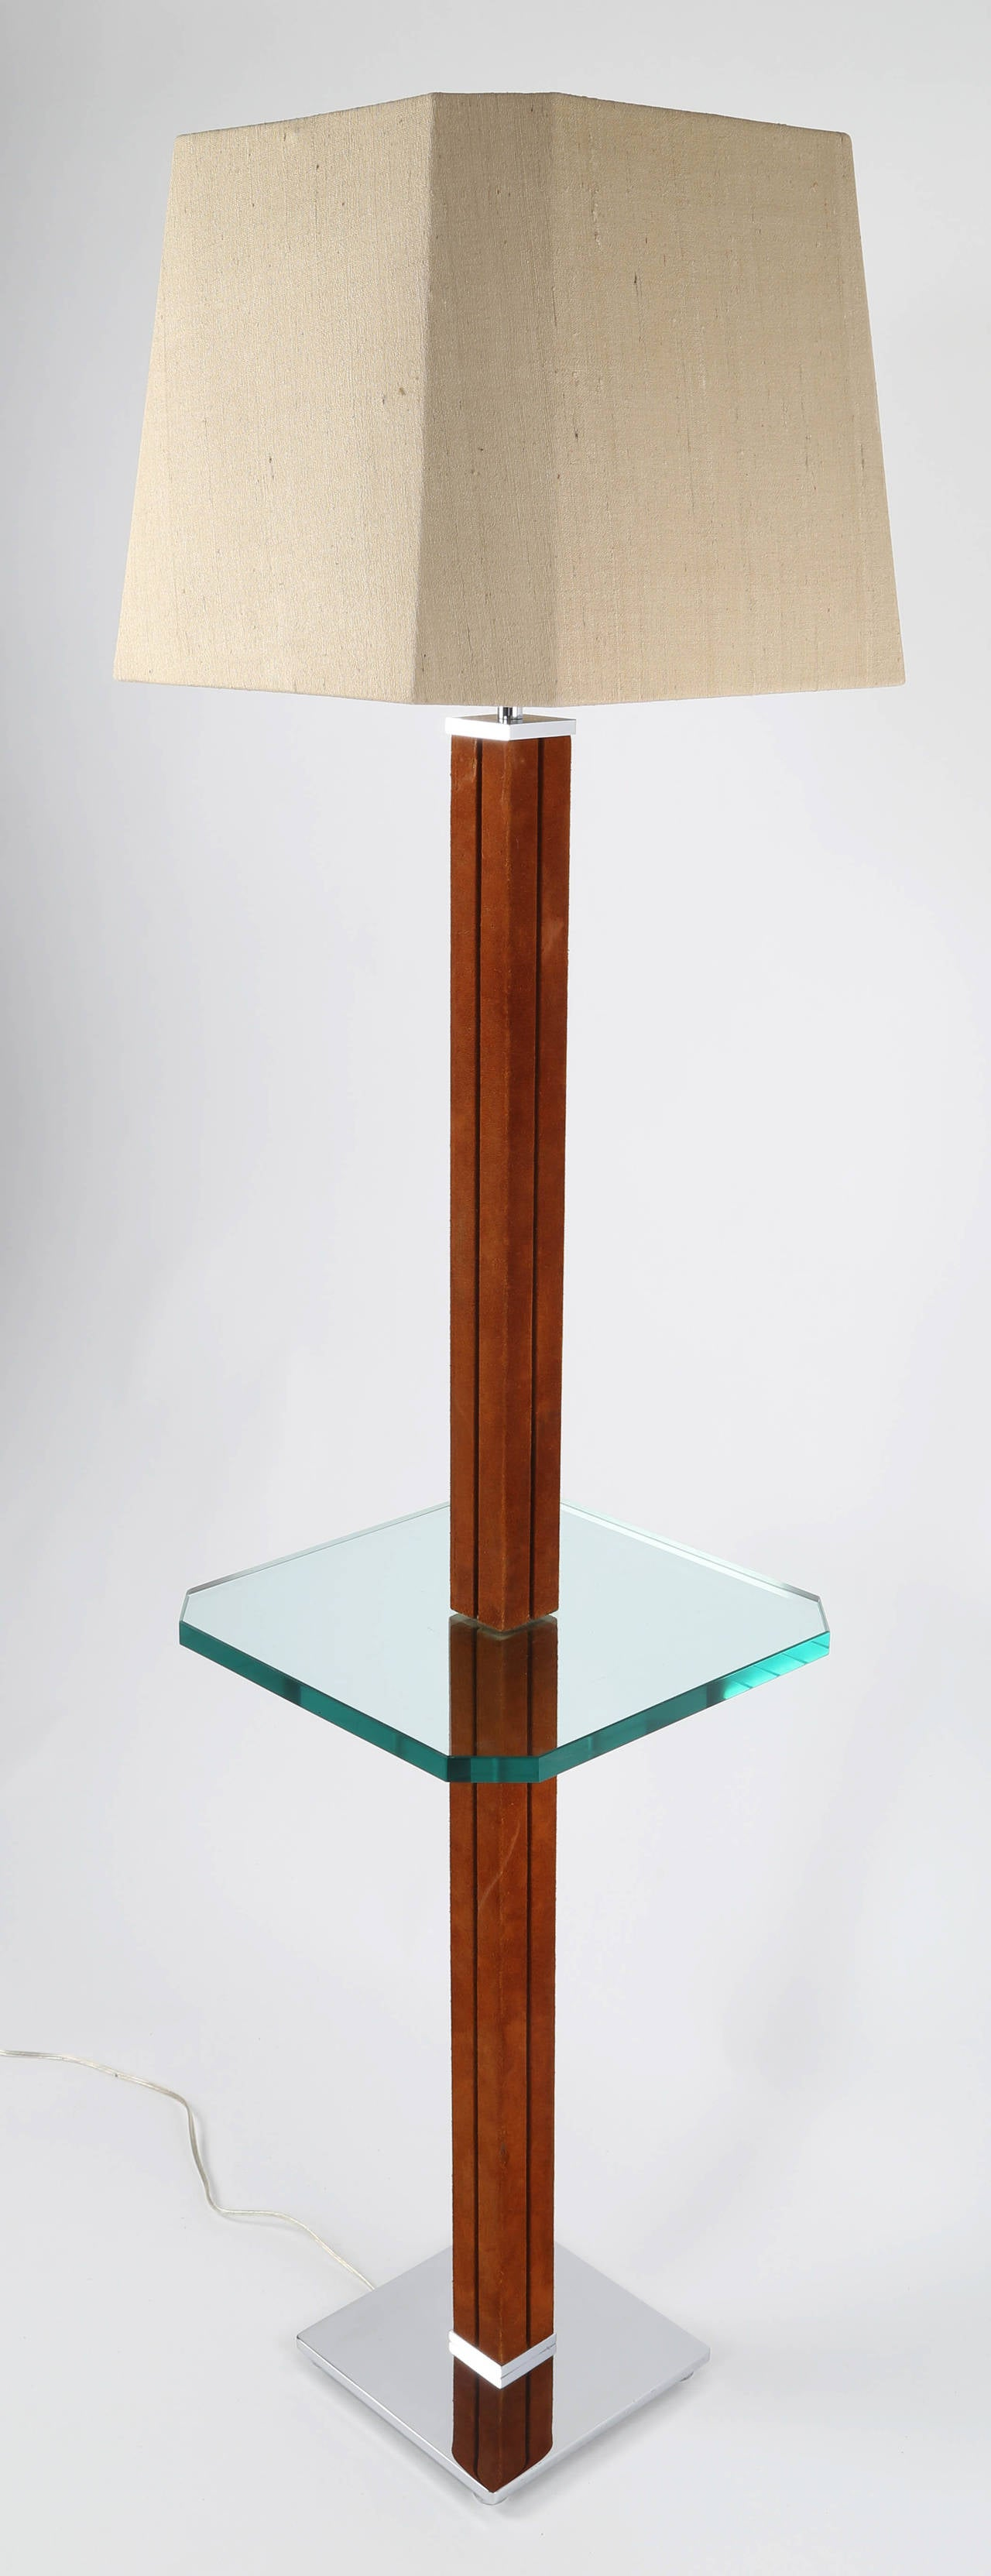 American 1970s Karl Springer Chrome, Suede and Glass Lamp Table For Sale